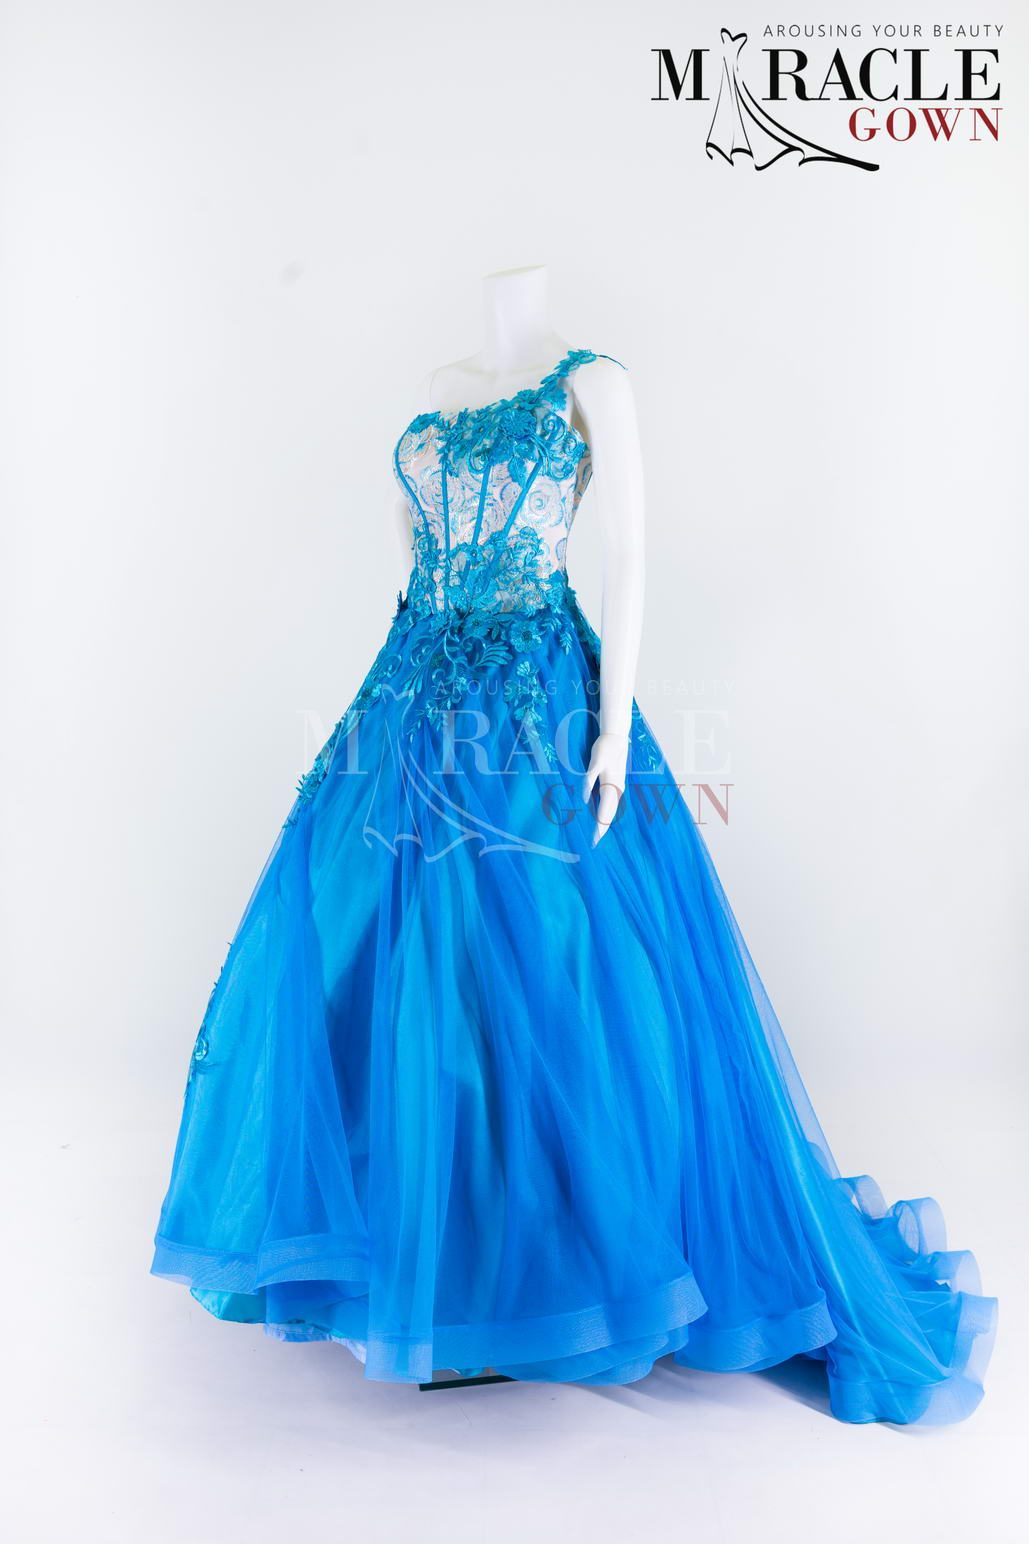 Sewa Gaun Surabaya - Miracle Gown - One Shoulder Embroidered Bustier On Top Of Blue Lapiz Gown